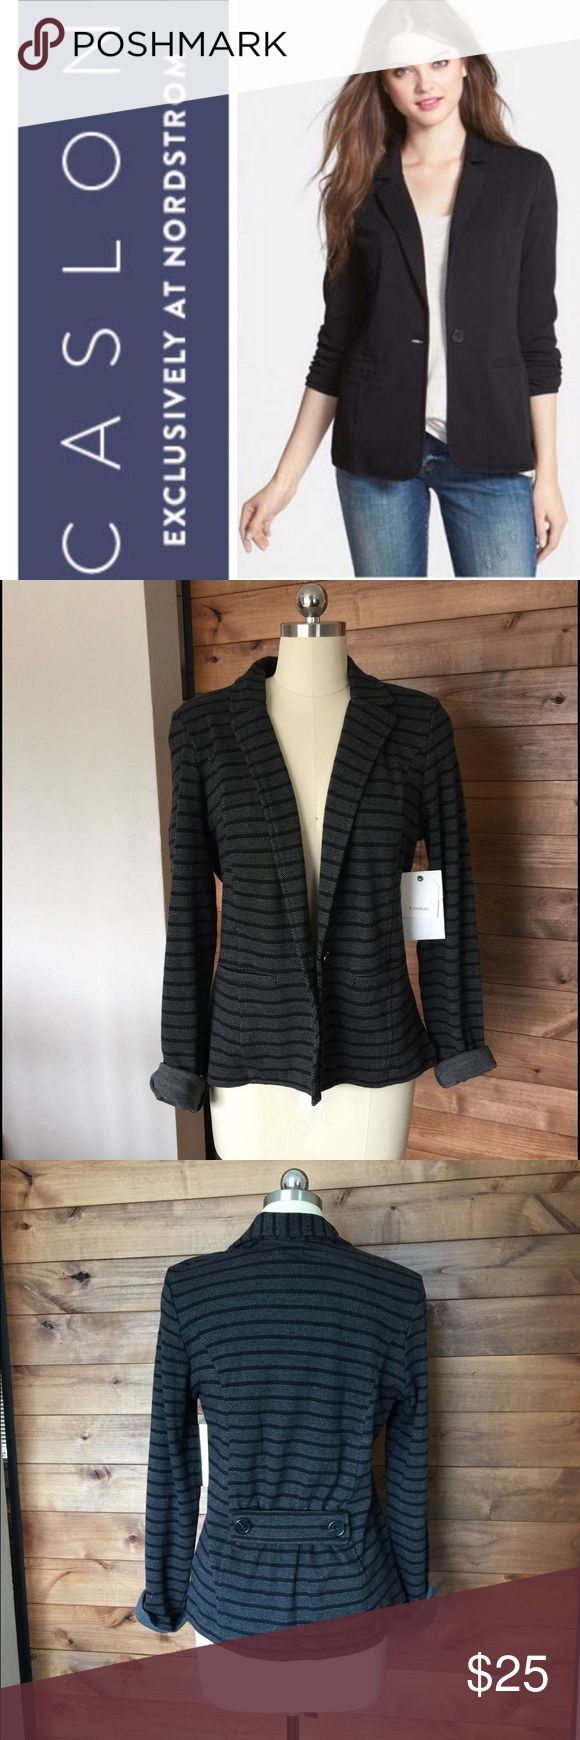 "Caslon by Nordstrom Grey & Black Knit Blazer NWT Soft Cotton knit in a striped blazer with a button-tab gather in the back for flattering definition. Versatile sleeves can be rolled or worn long. * 23"" regular length (size Medium). * Single-button closure. * Front welt hand pockets. * 100% cotton. Caslon Jackets & Coats Blazers"